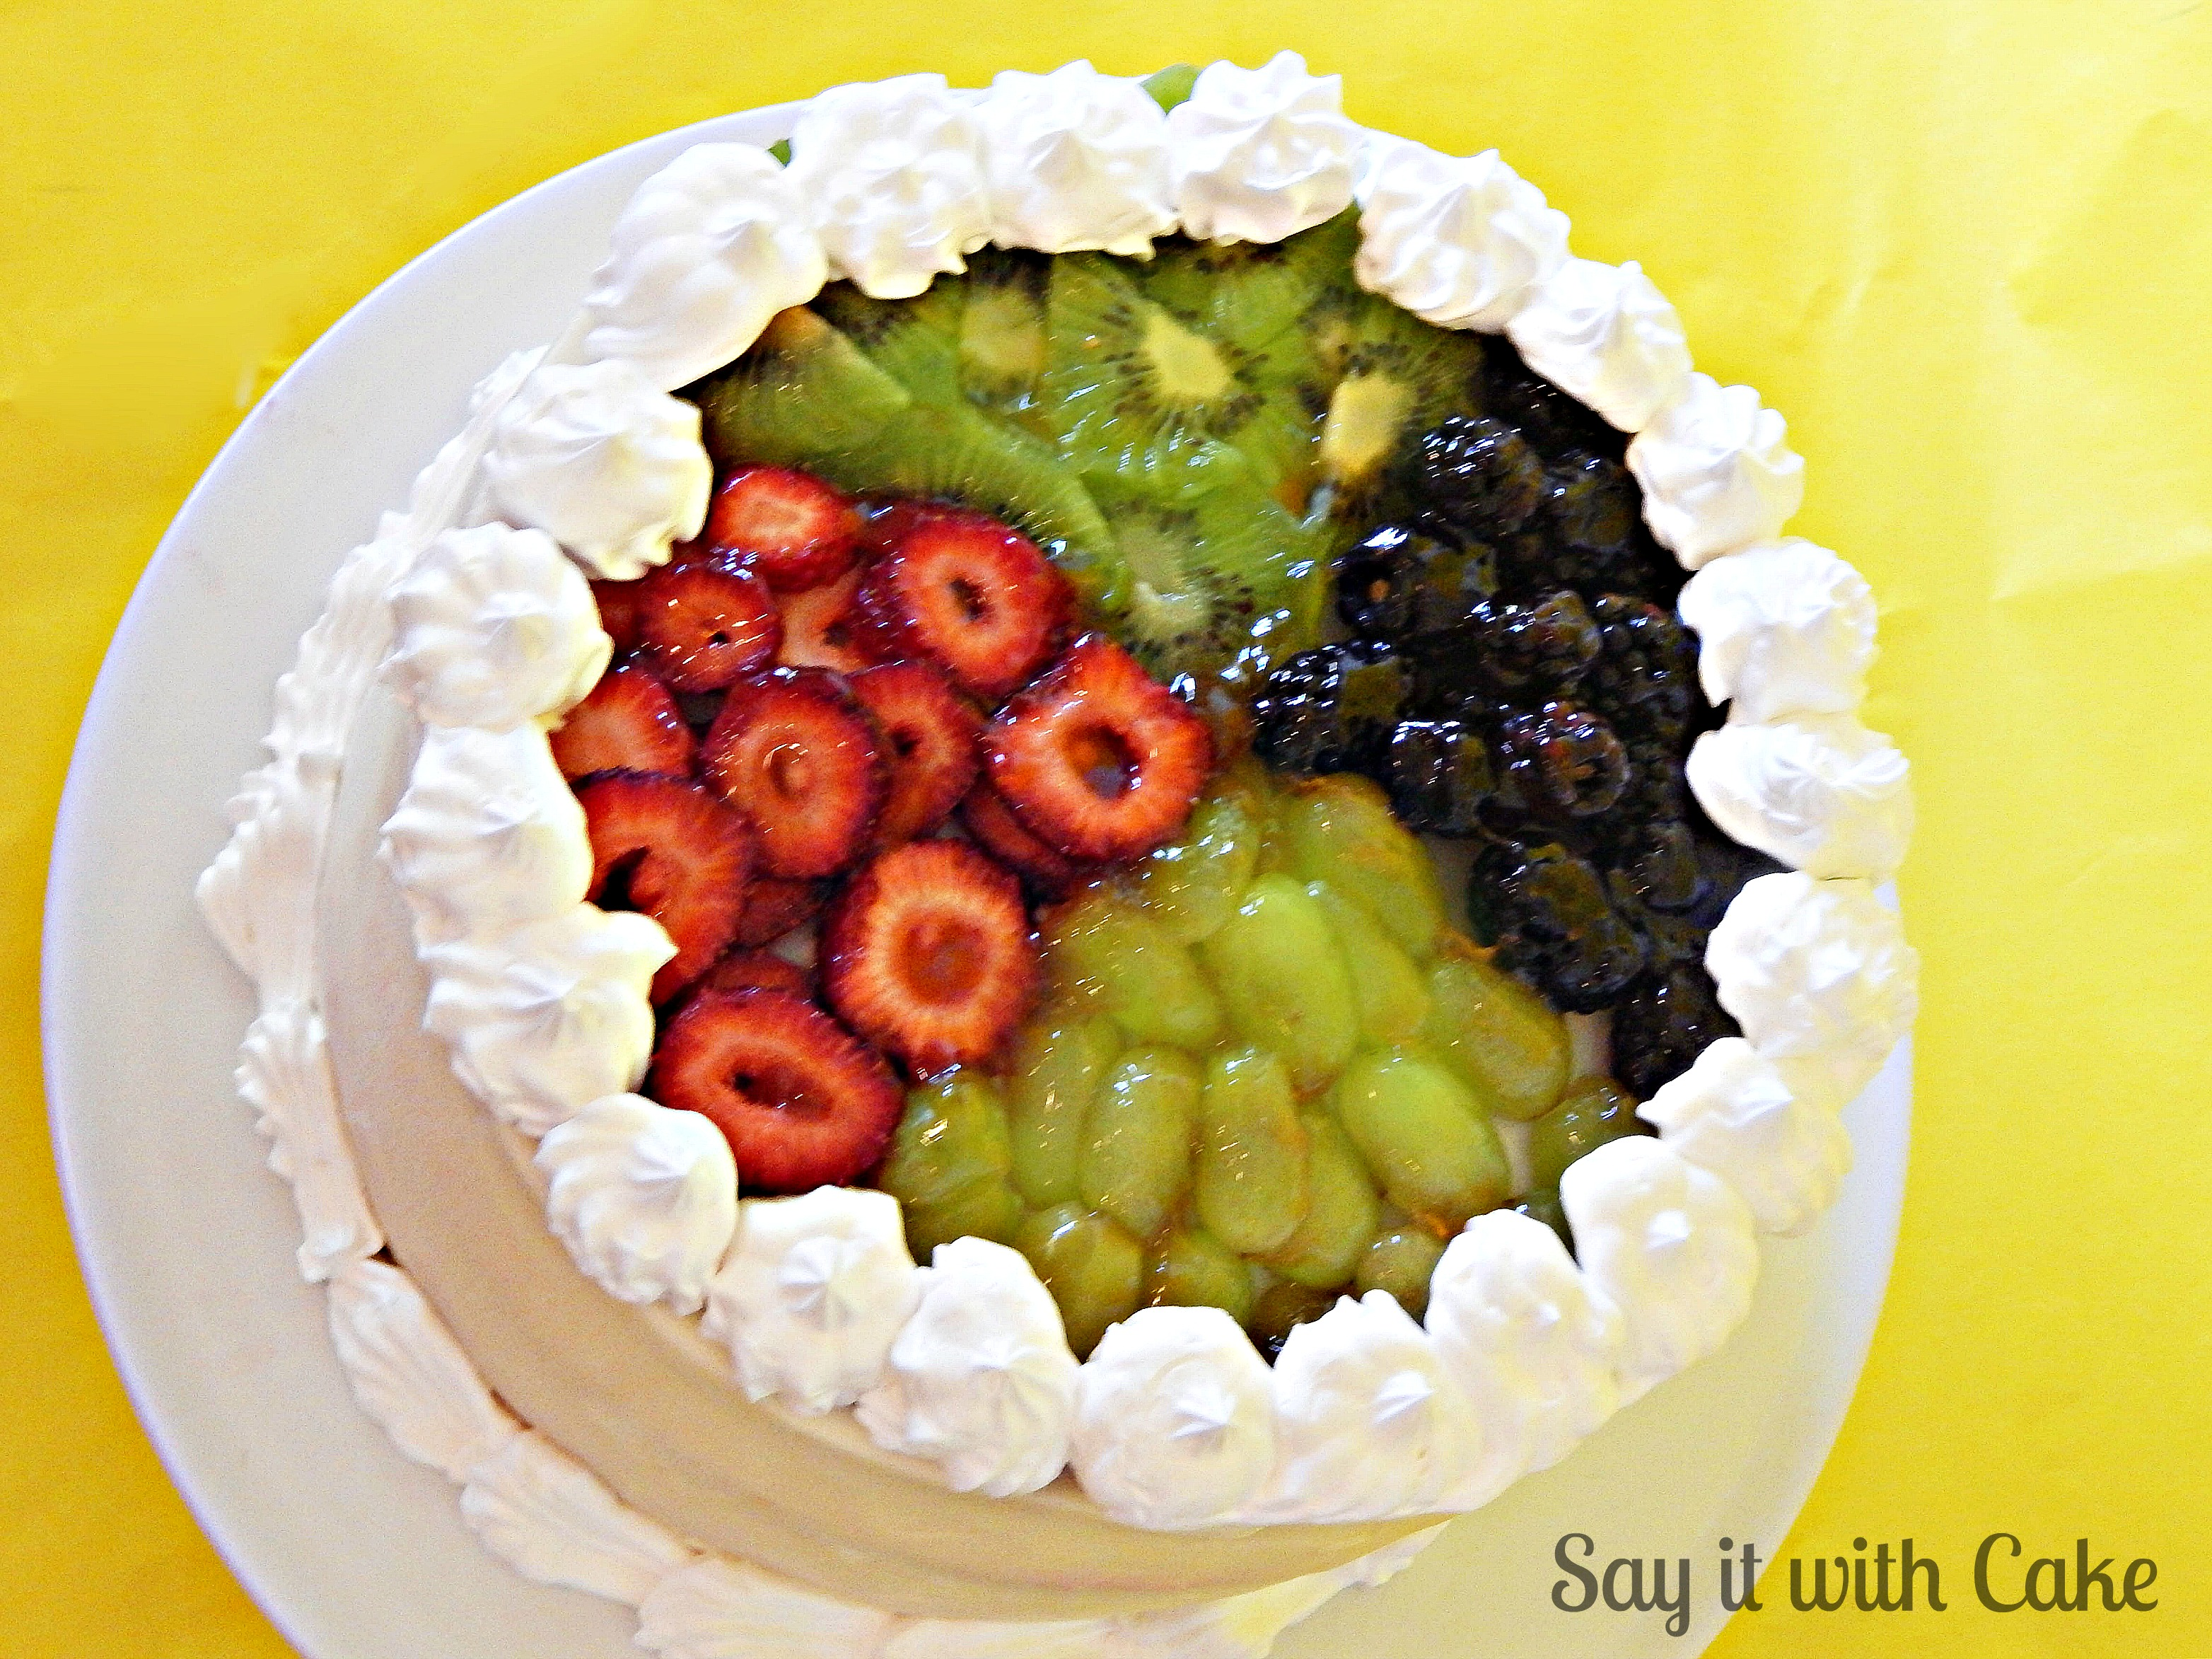 Cake With Fruit Topping : White Chocolate Ganache Cake with Fruit topping Say it ...